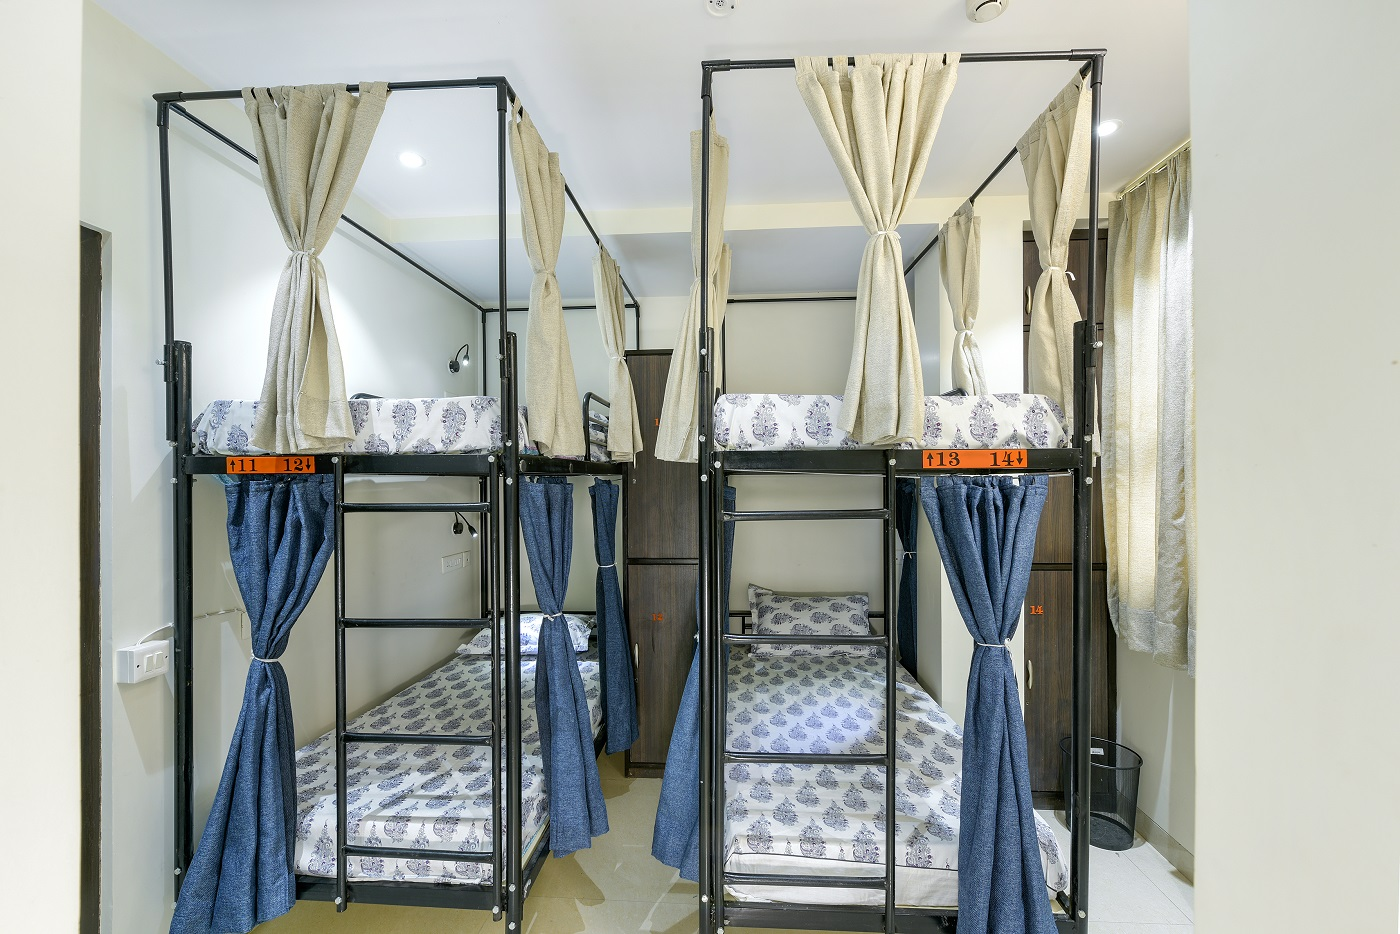 Bunk-bed-room-2-2-with-toilet